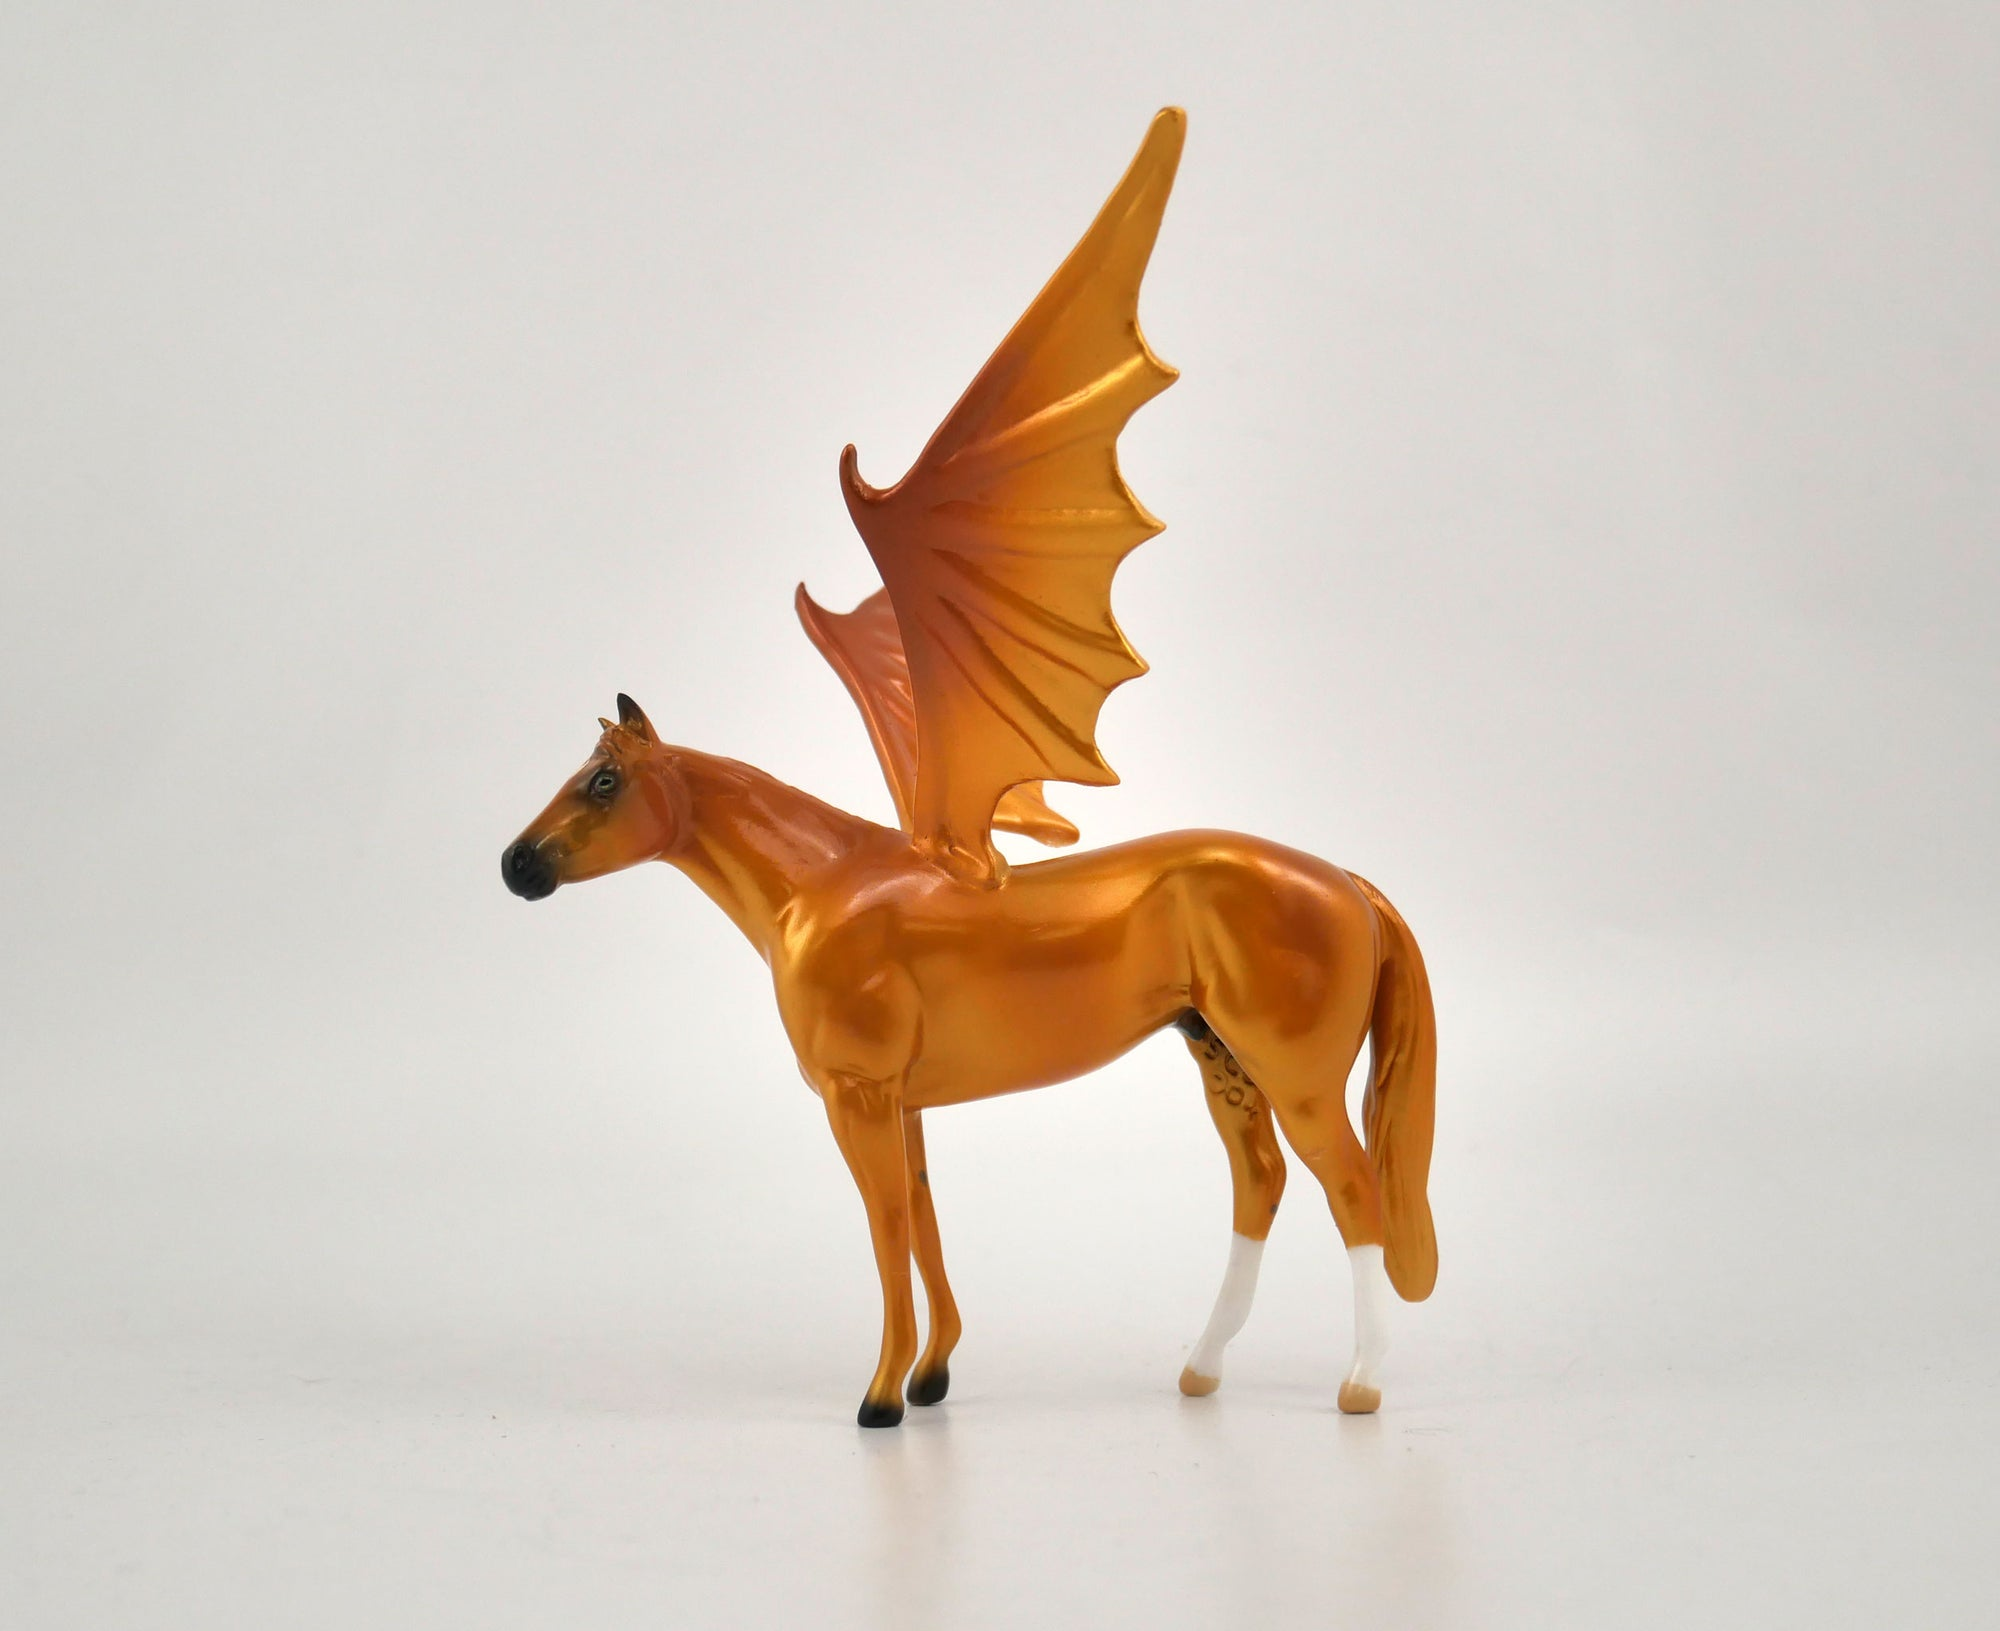 Damien-OOAK Bat Chip Stock Horse  By Audrey Dixon MM 2020